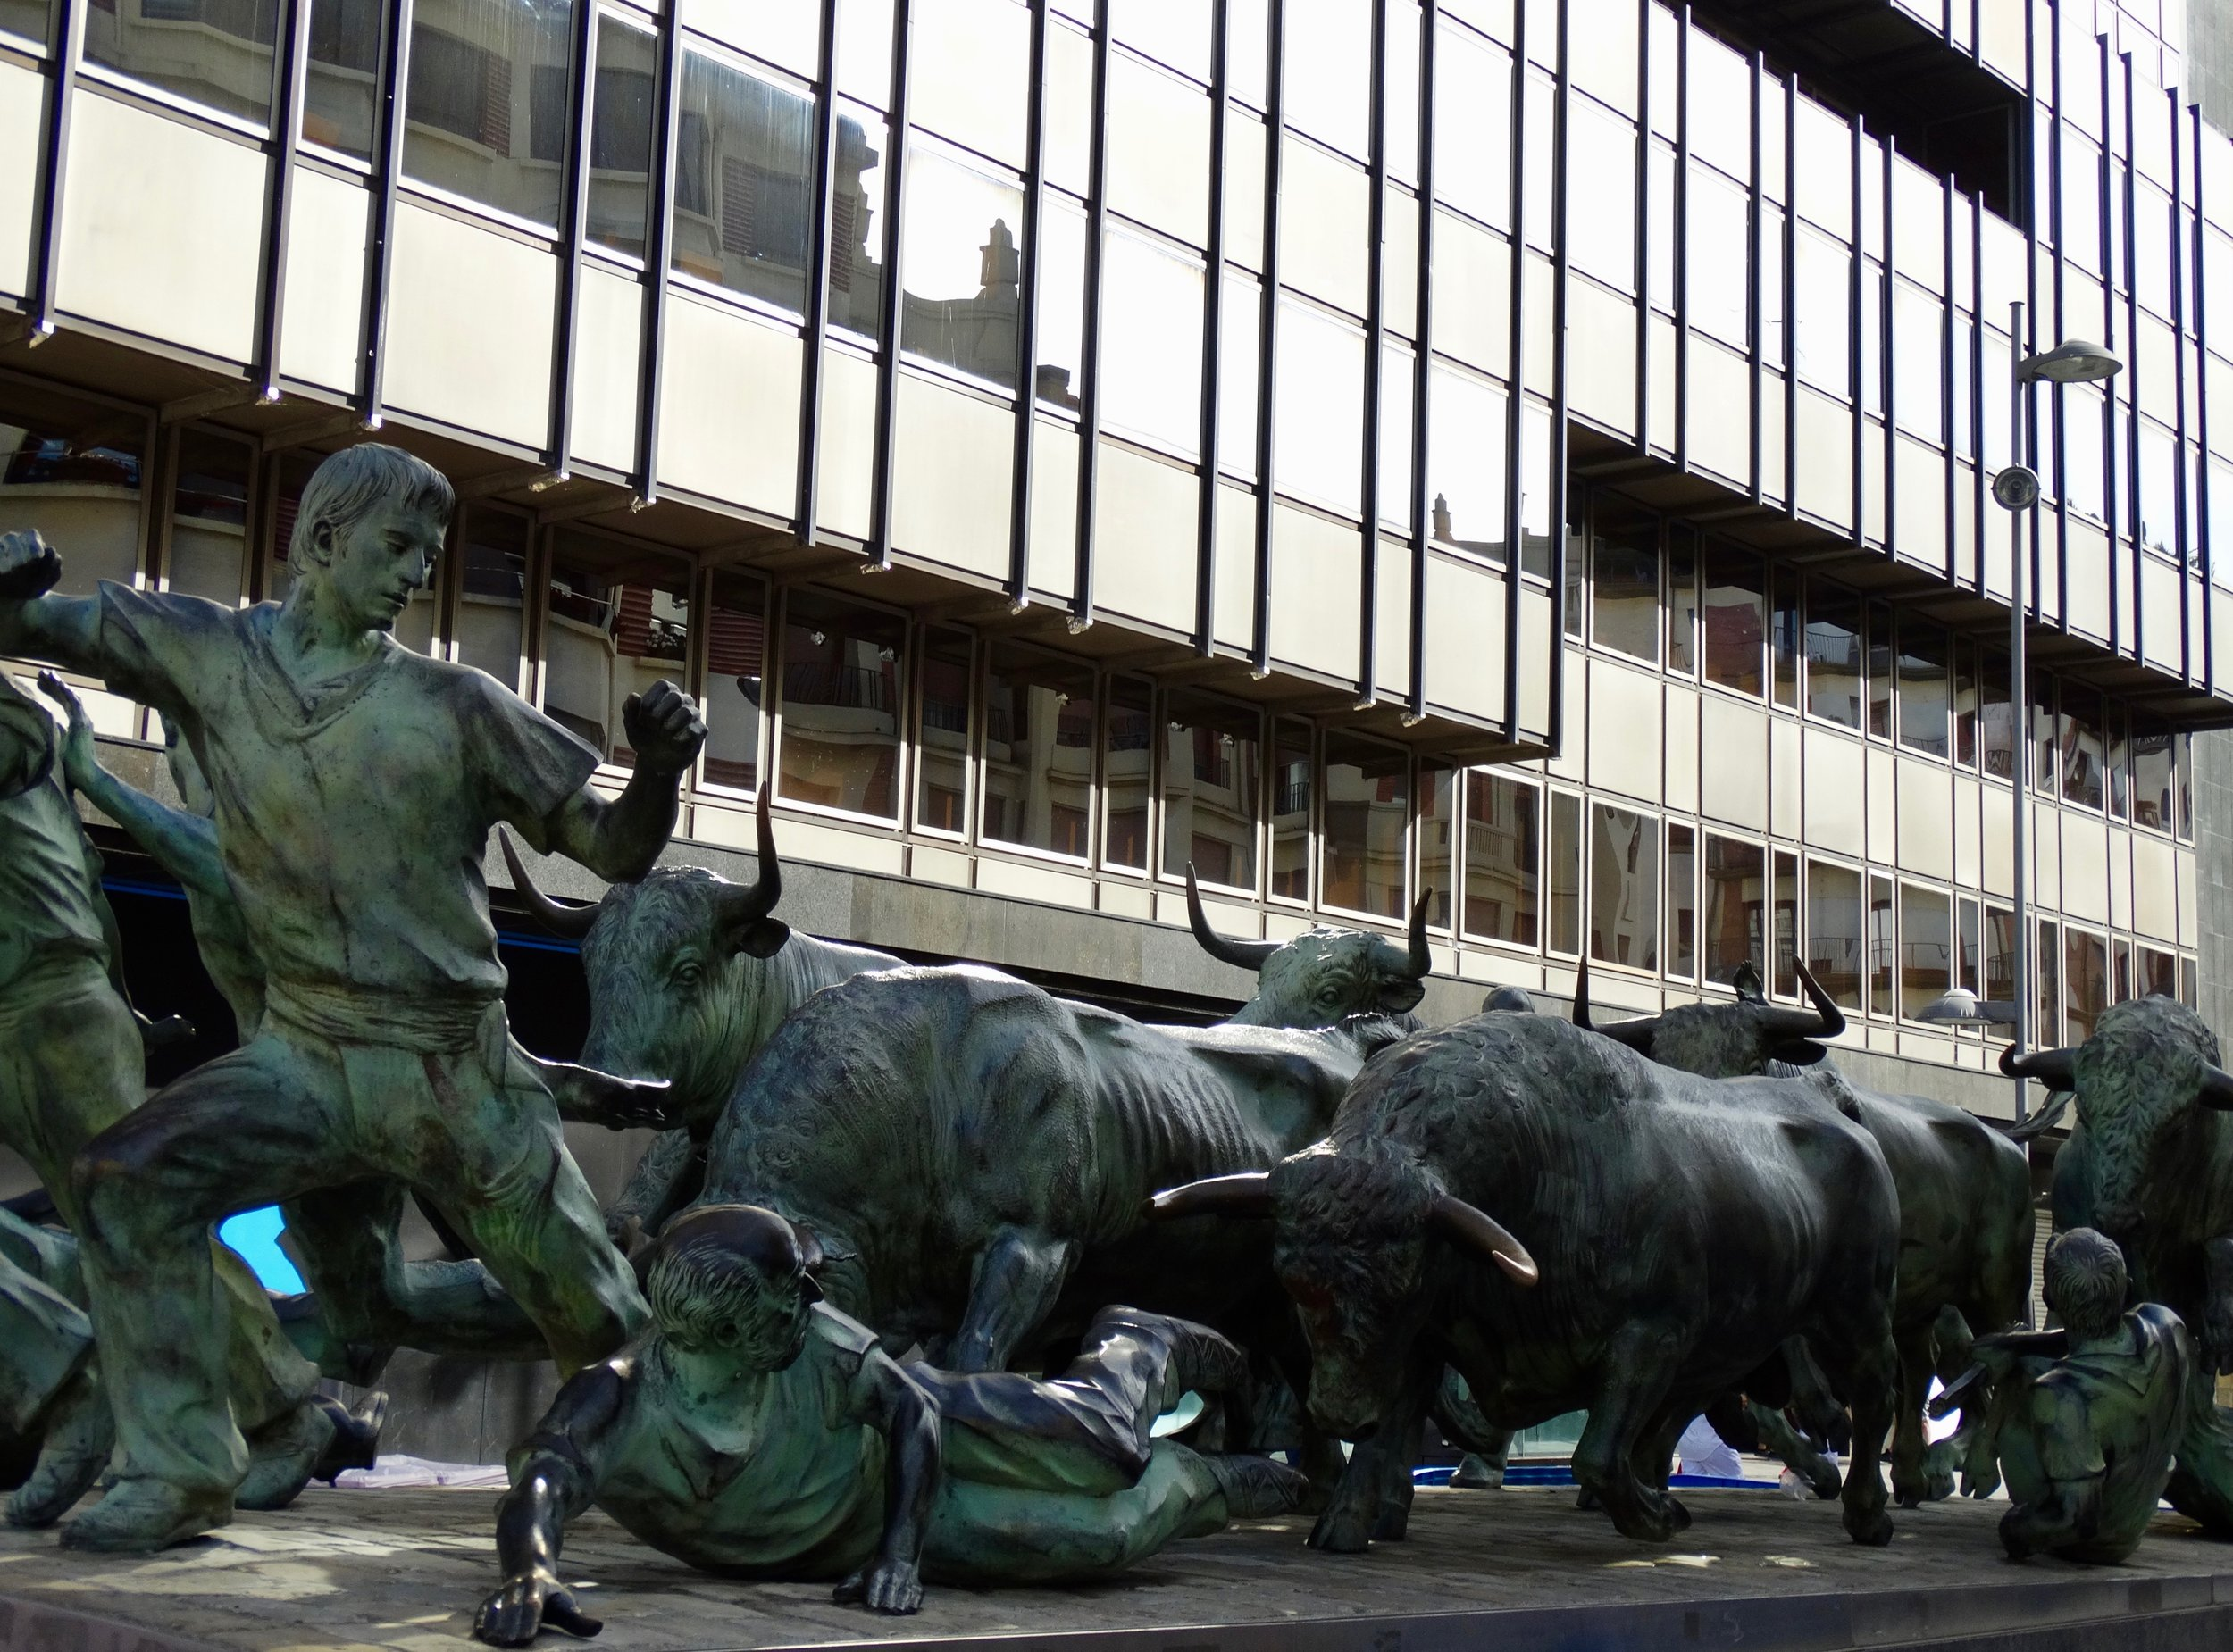 This is obviously a statue depicting the bull run, but I couldn't help but think that this could also be interpreted as Main Street meeting Wall Street.